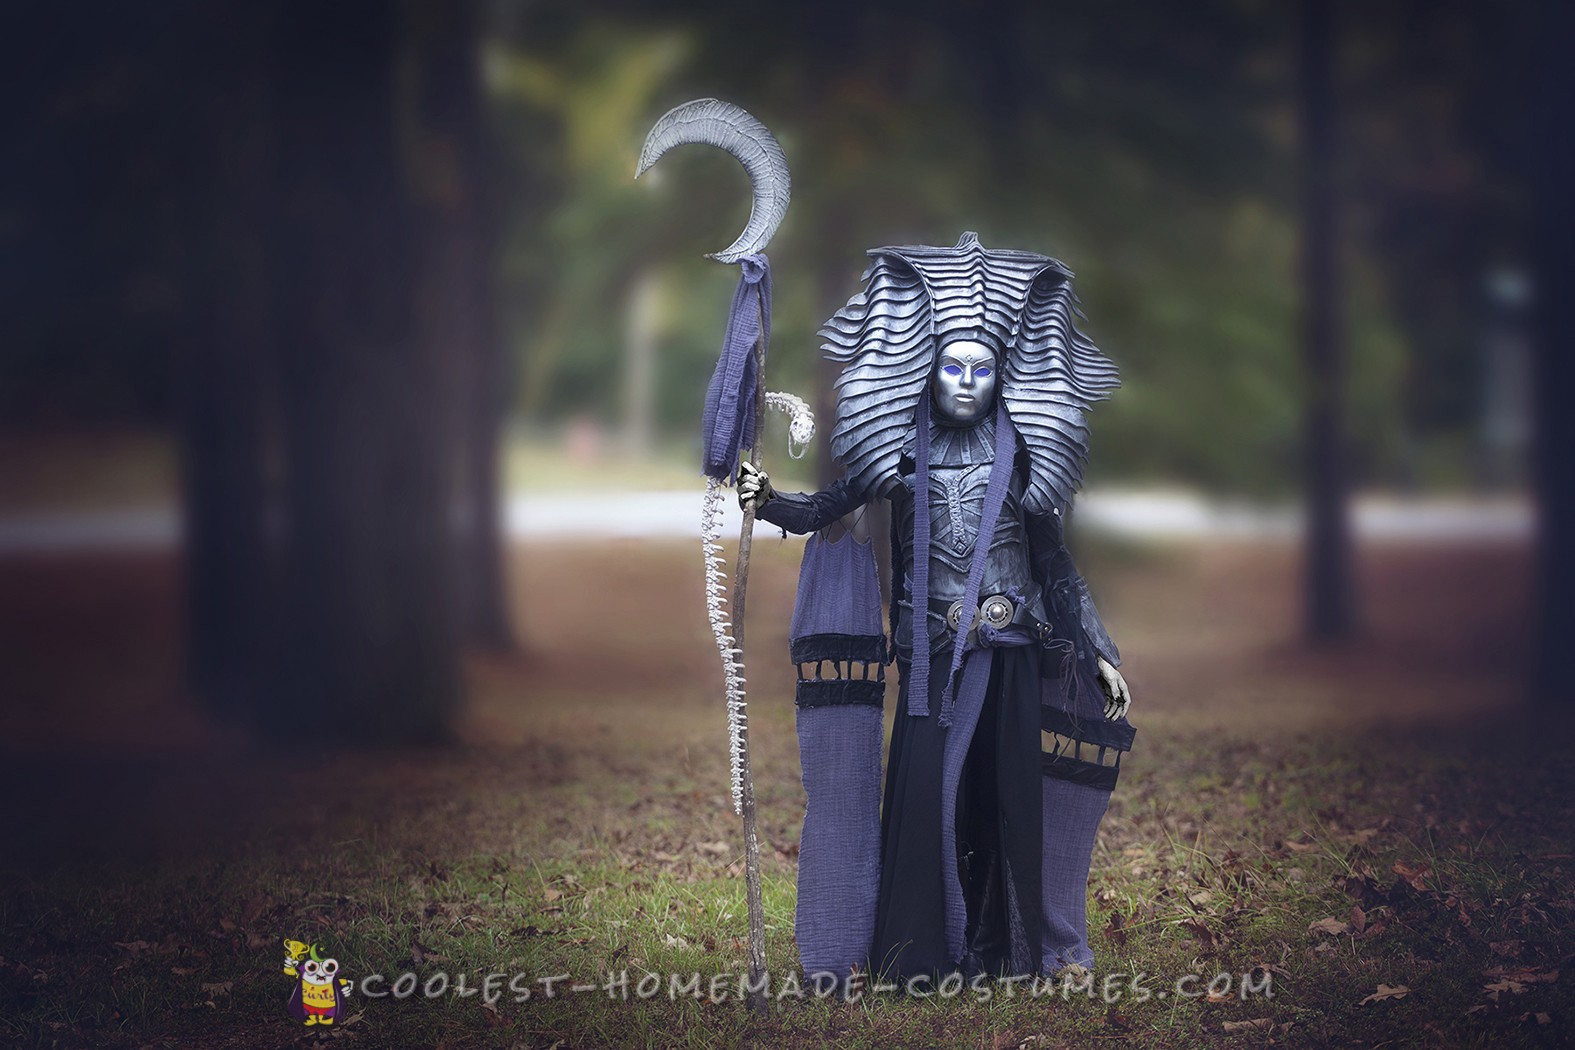 Cleopsis, Eater of death costume!